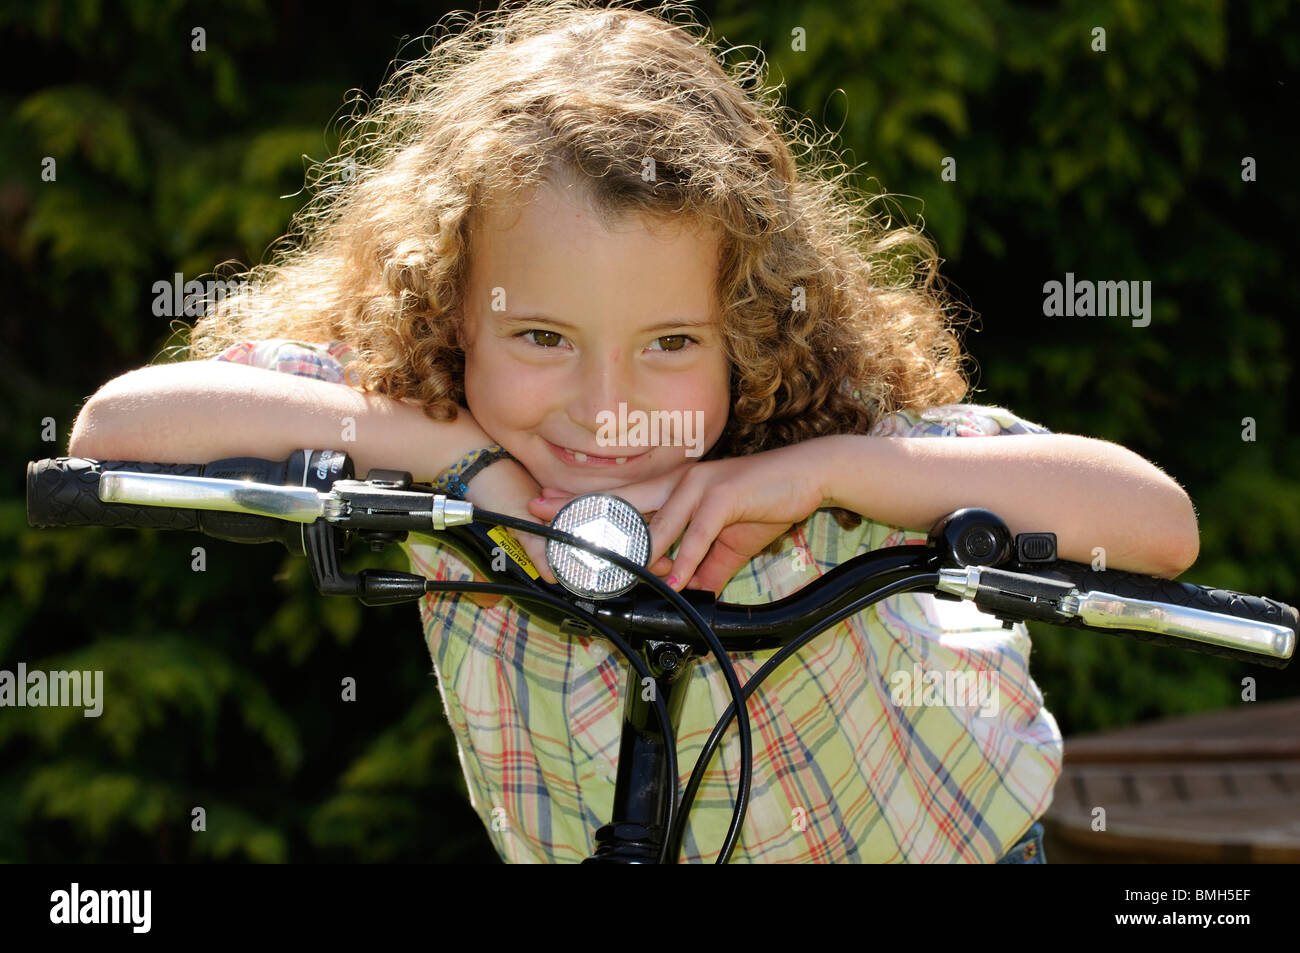 Portrait of a little girl leaning on the handlebars of her bicycle She has her front teeth missing - Stock Image